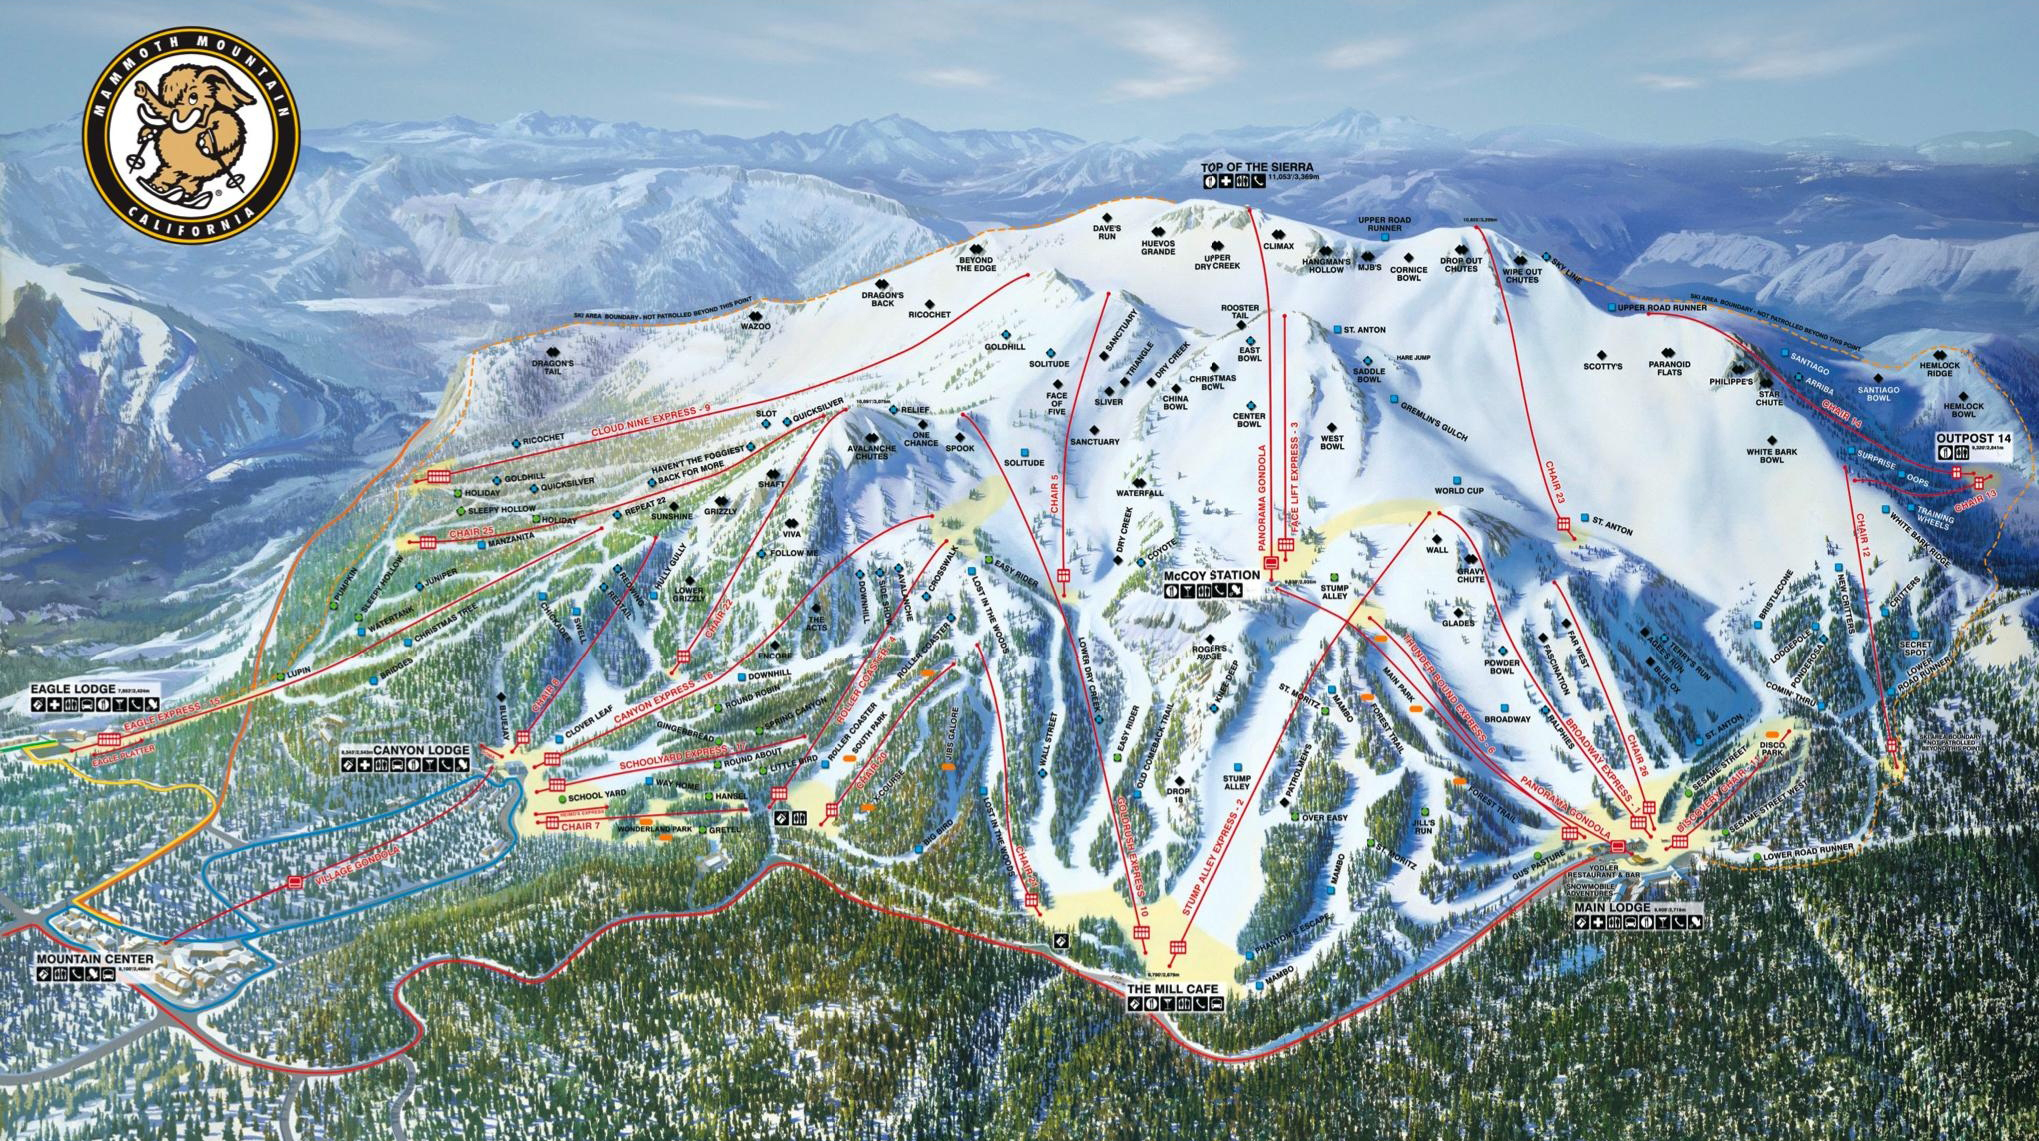 mammoth buys bear mountain & snow summit - powpowpowpowpowpow